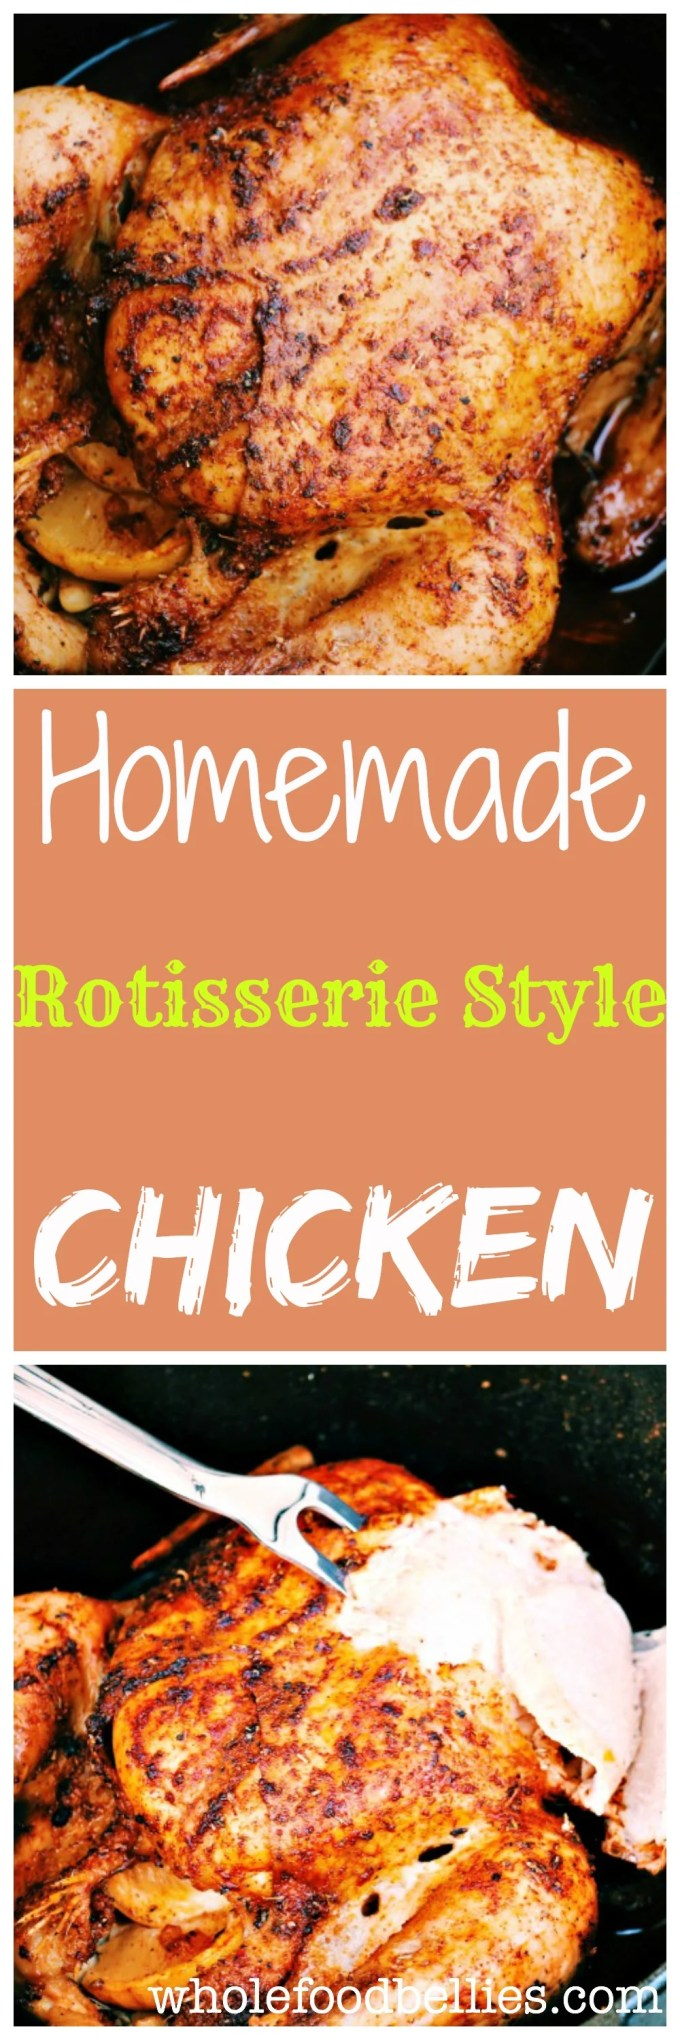 Rotisserie Style Chicken Pinnable Image @wholefoodbellies.com